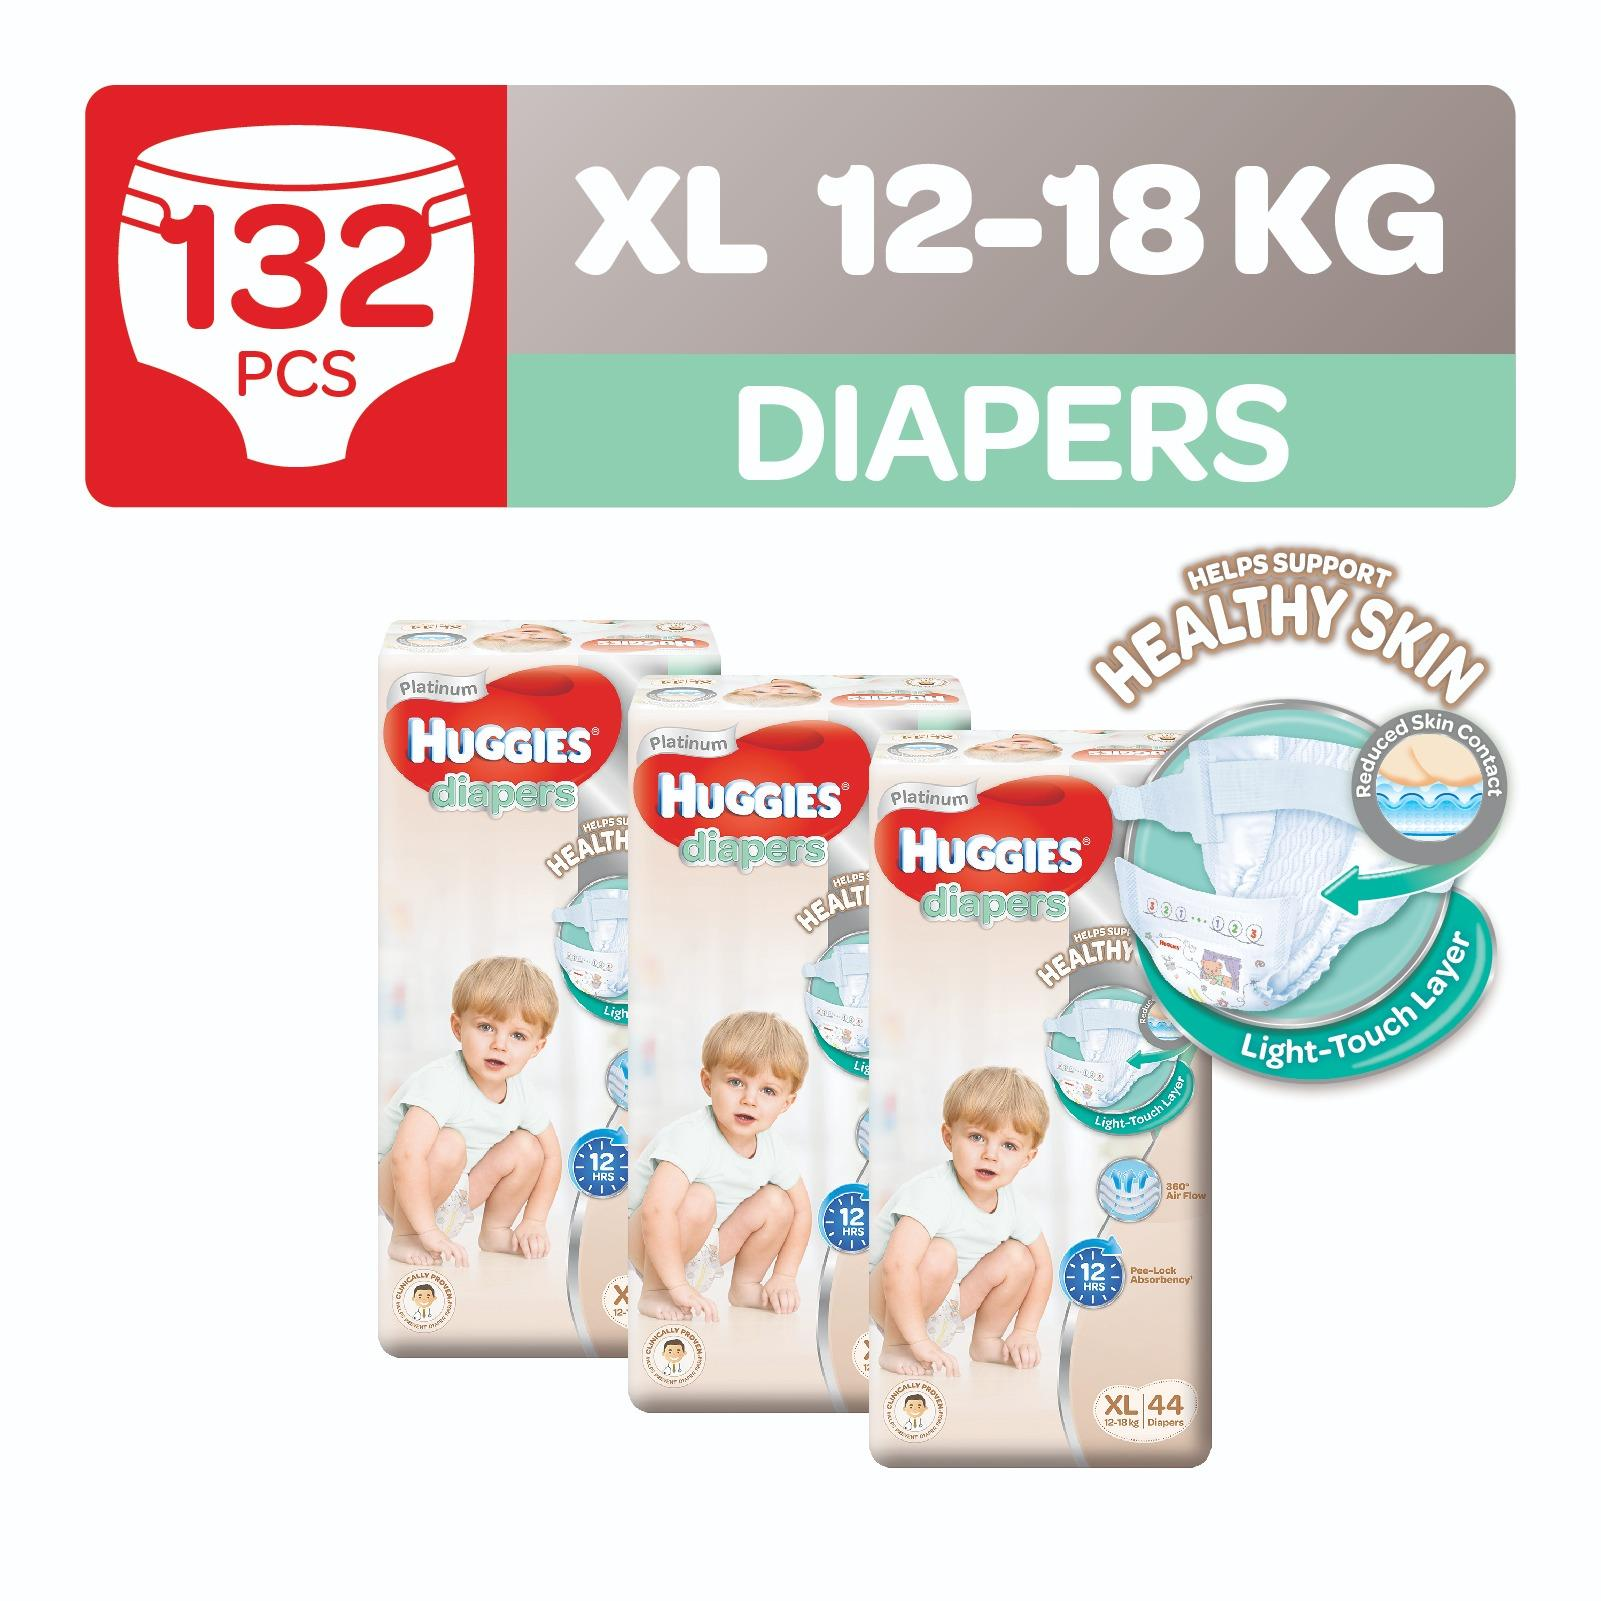 Compare Price Huggies Platinum Diapers Xl 44Pcs X 3 Packs Huggies On Singapore